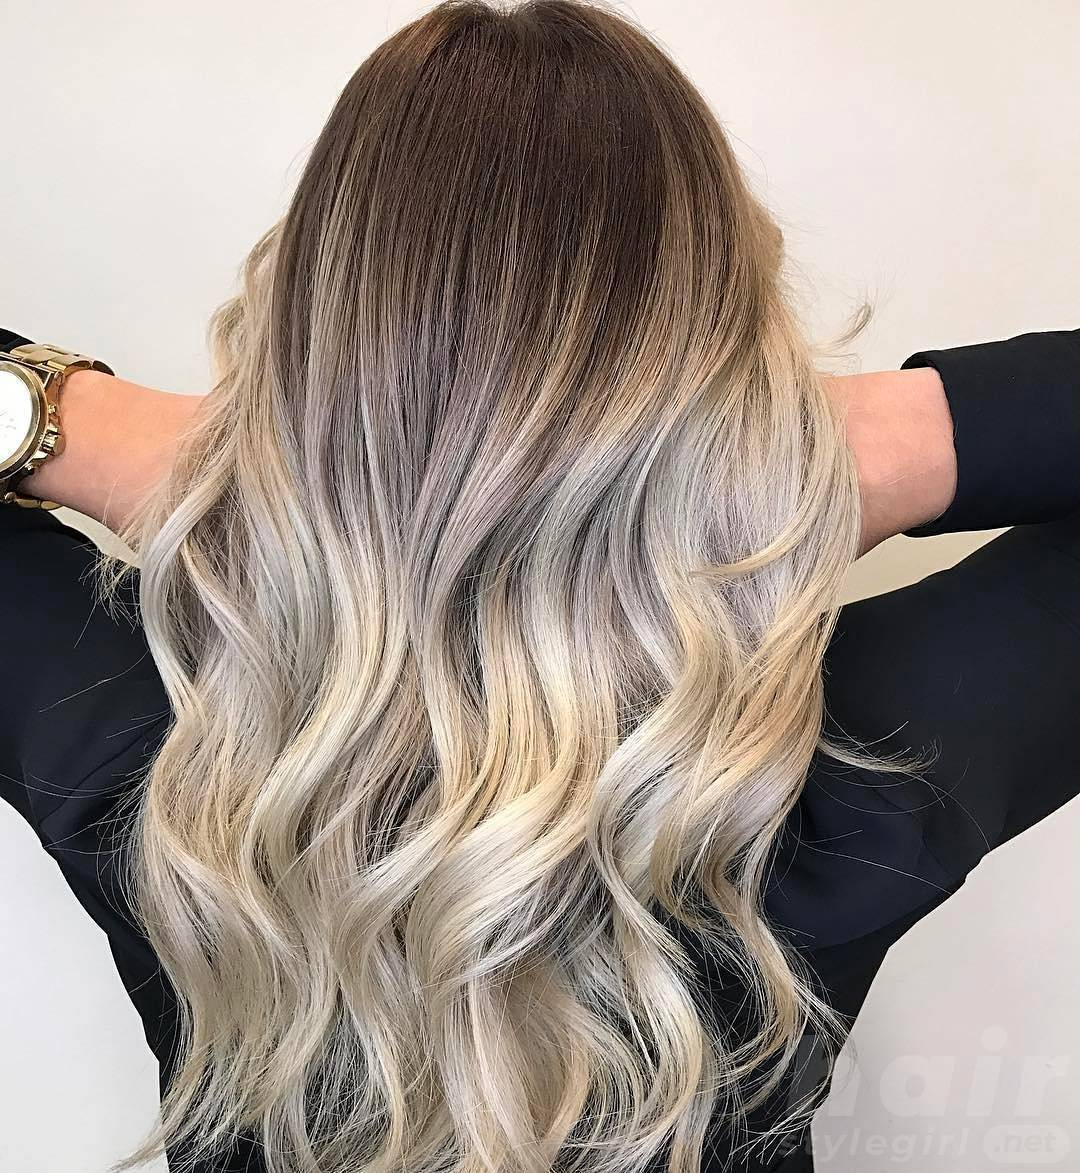 Blonde and white Balayage Hairstyle